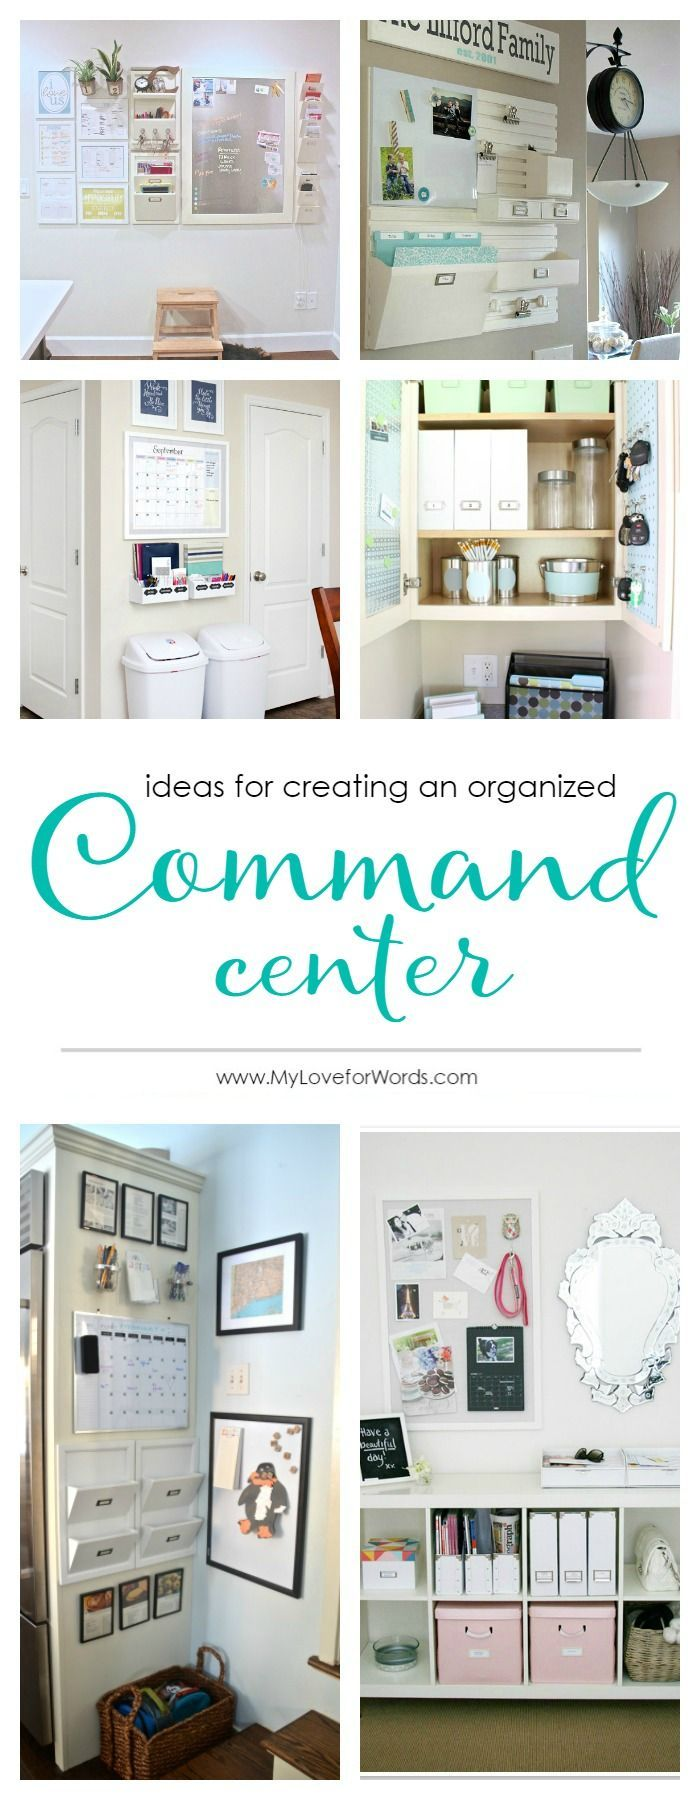 884 best Family Command Center images on Pinterest | Command centers ...